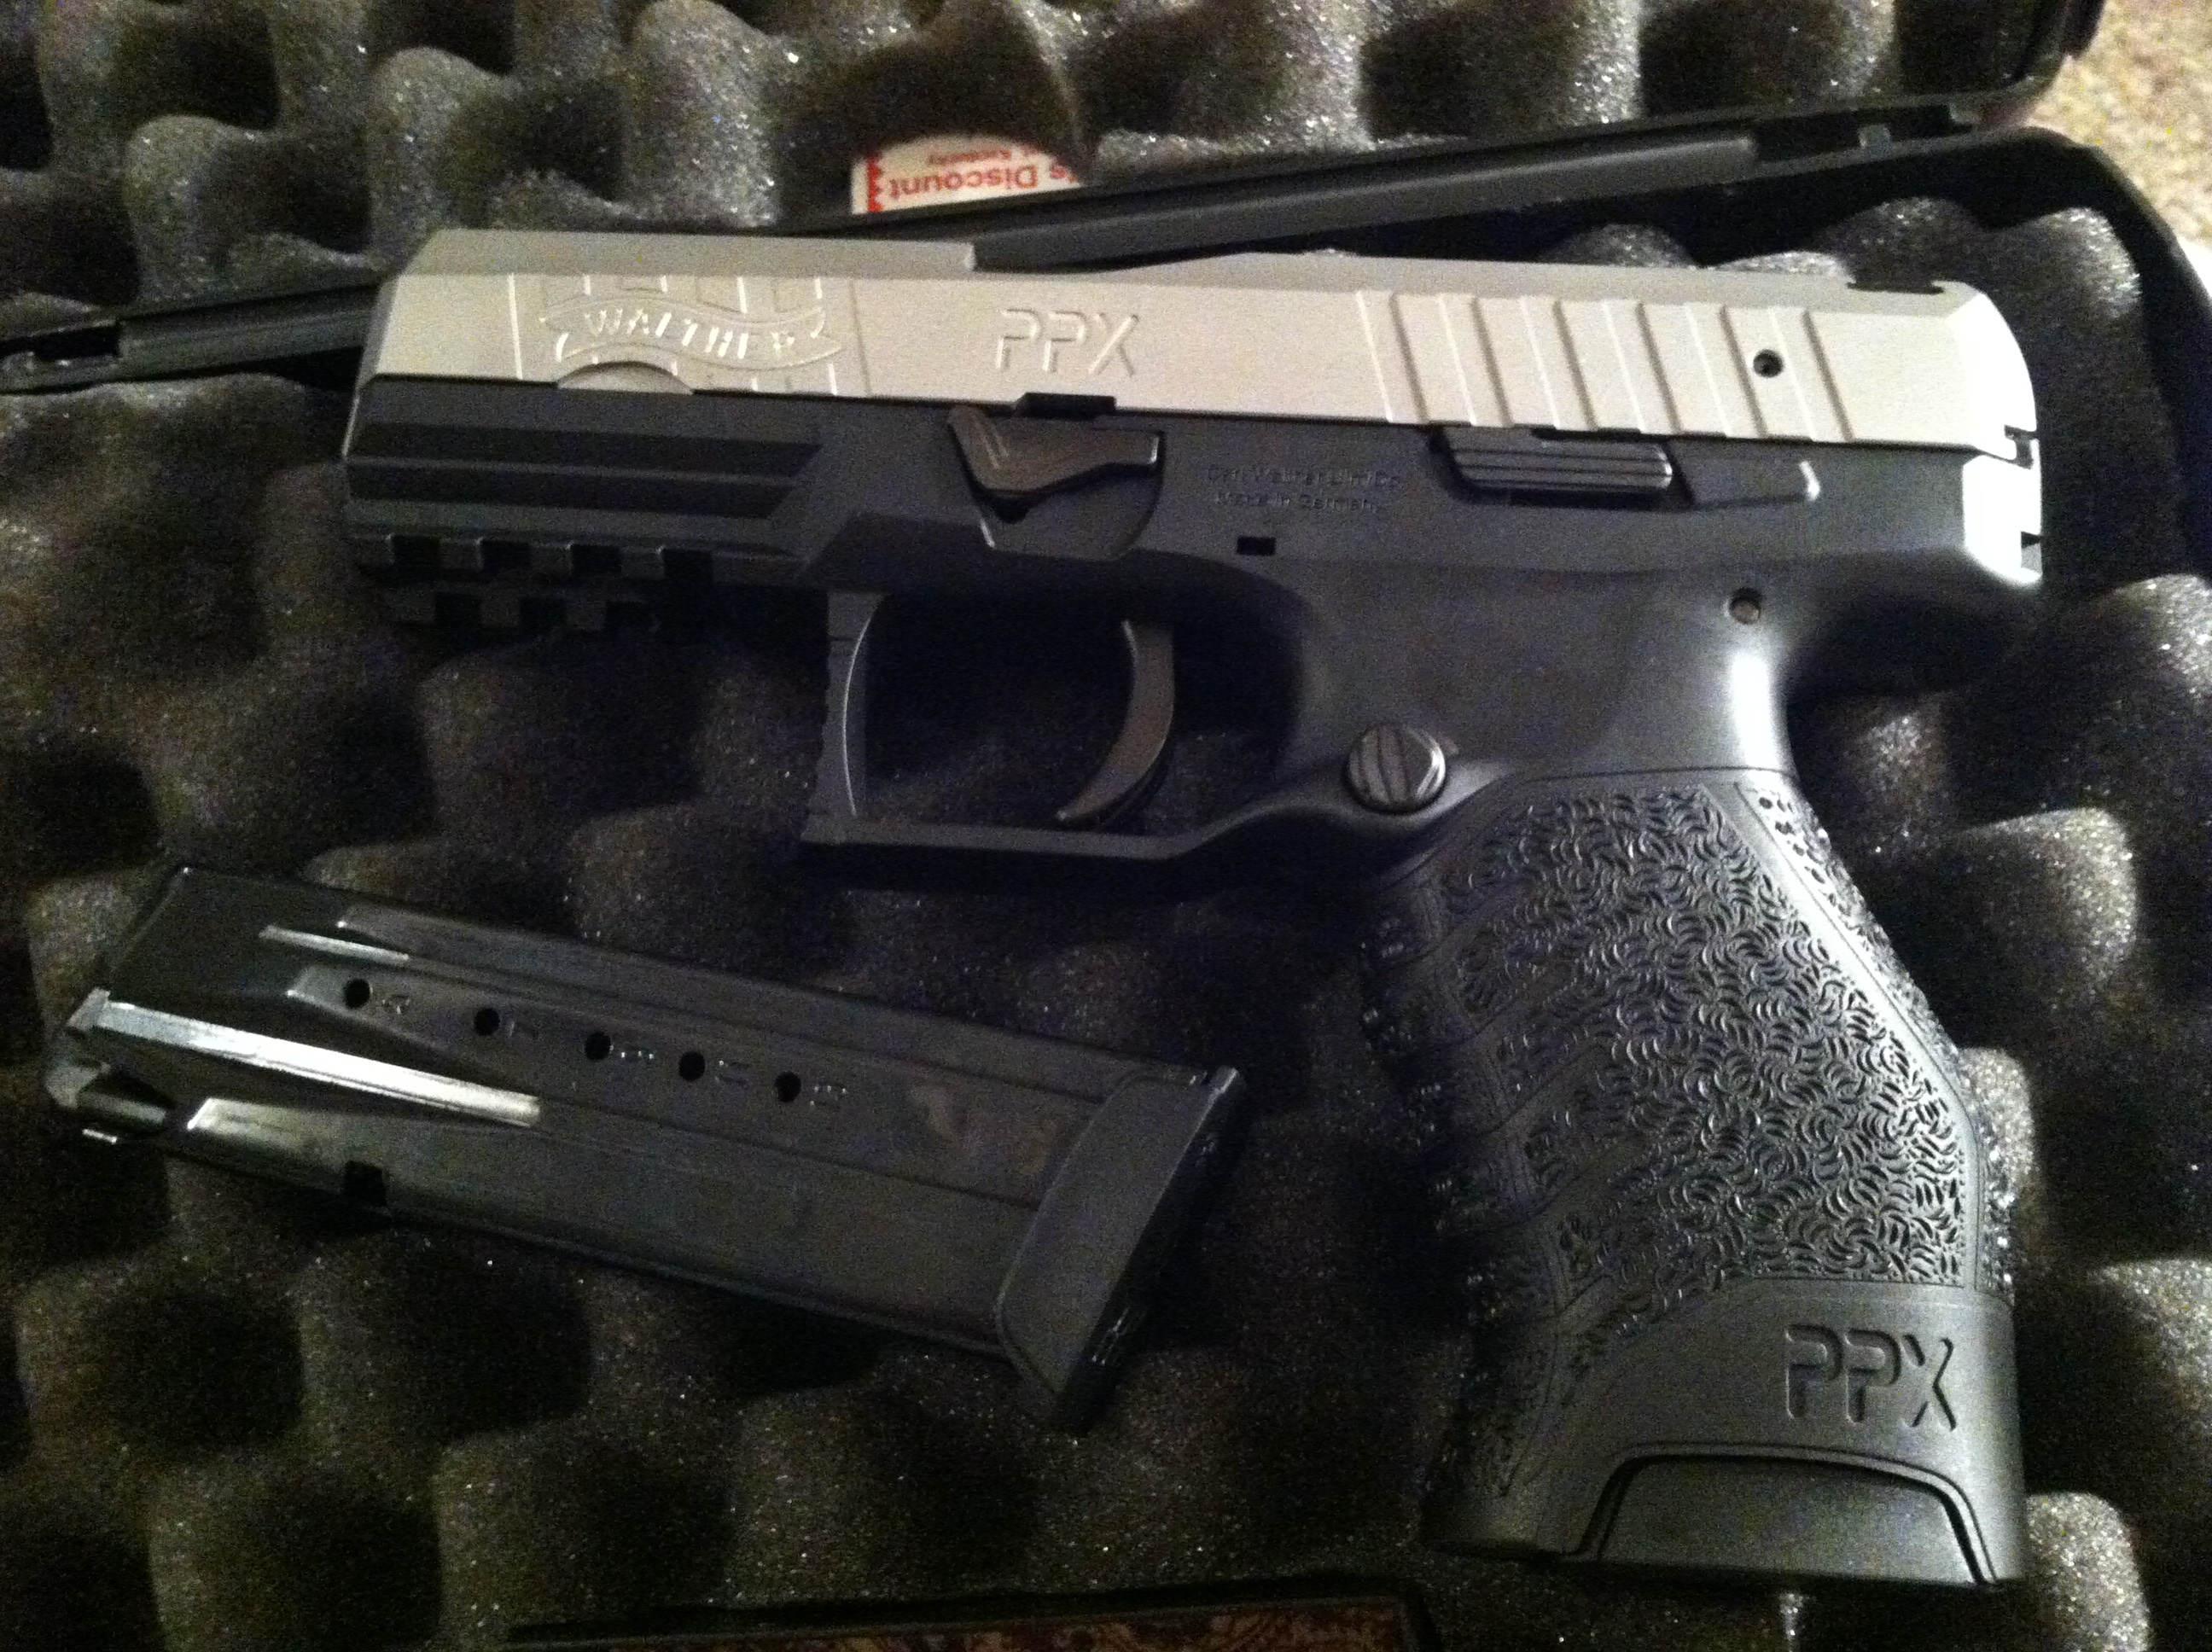 My new Walther PPX